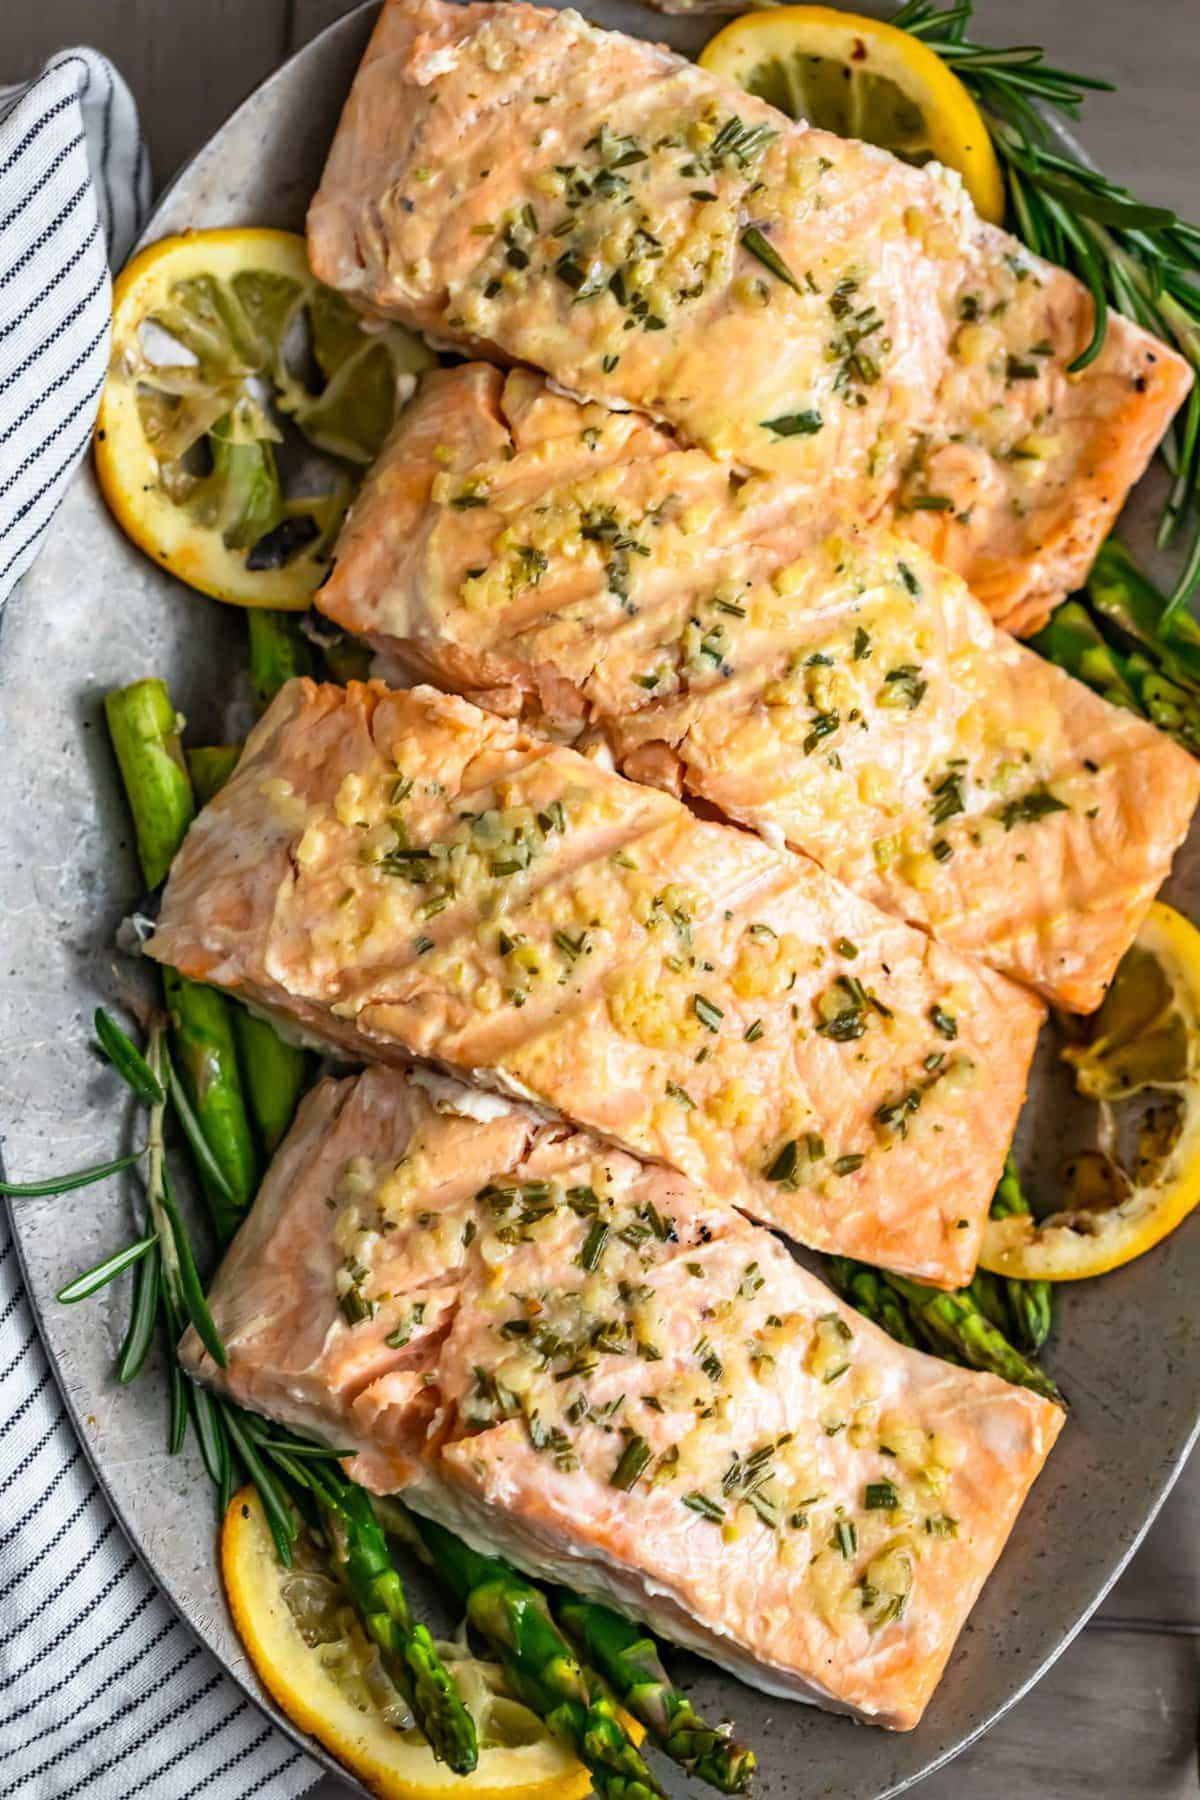 grilled salmon fillets on a serving platter